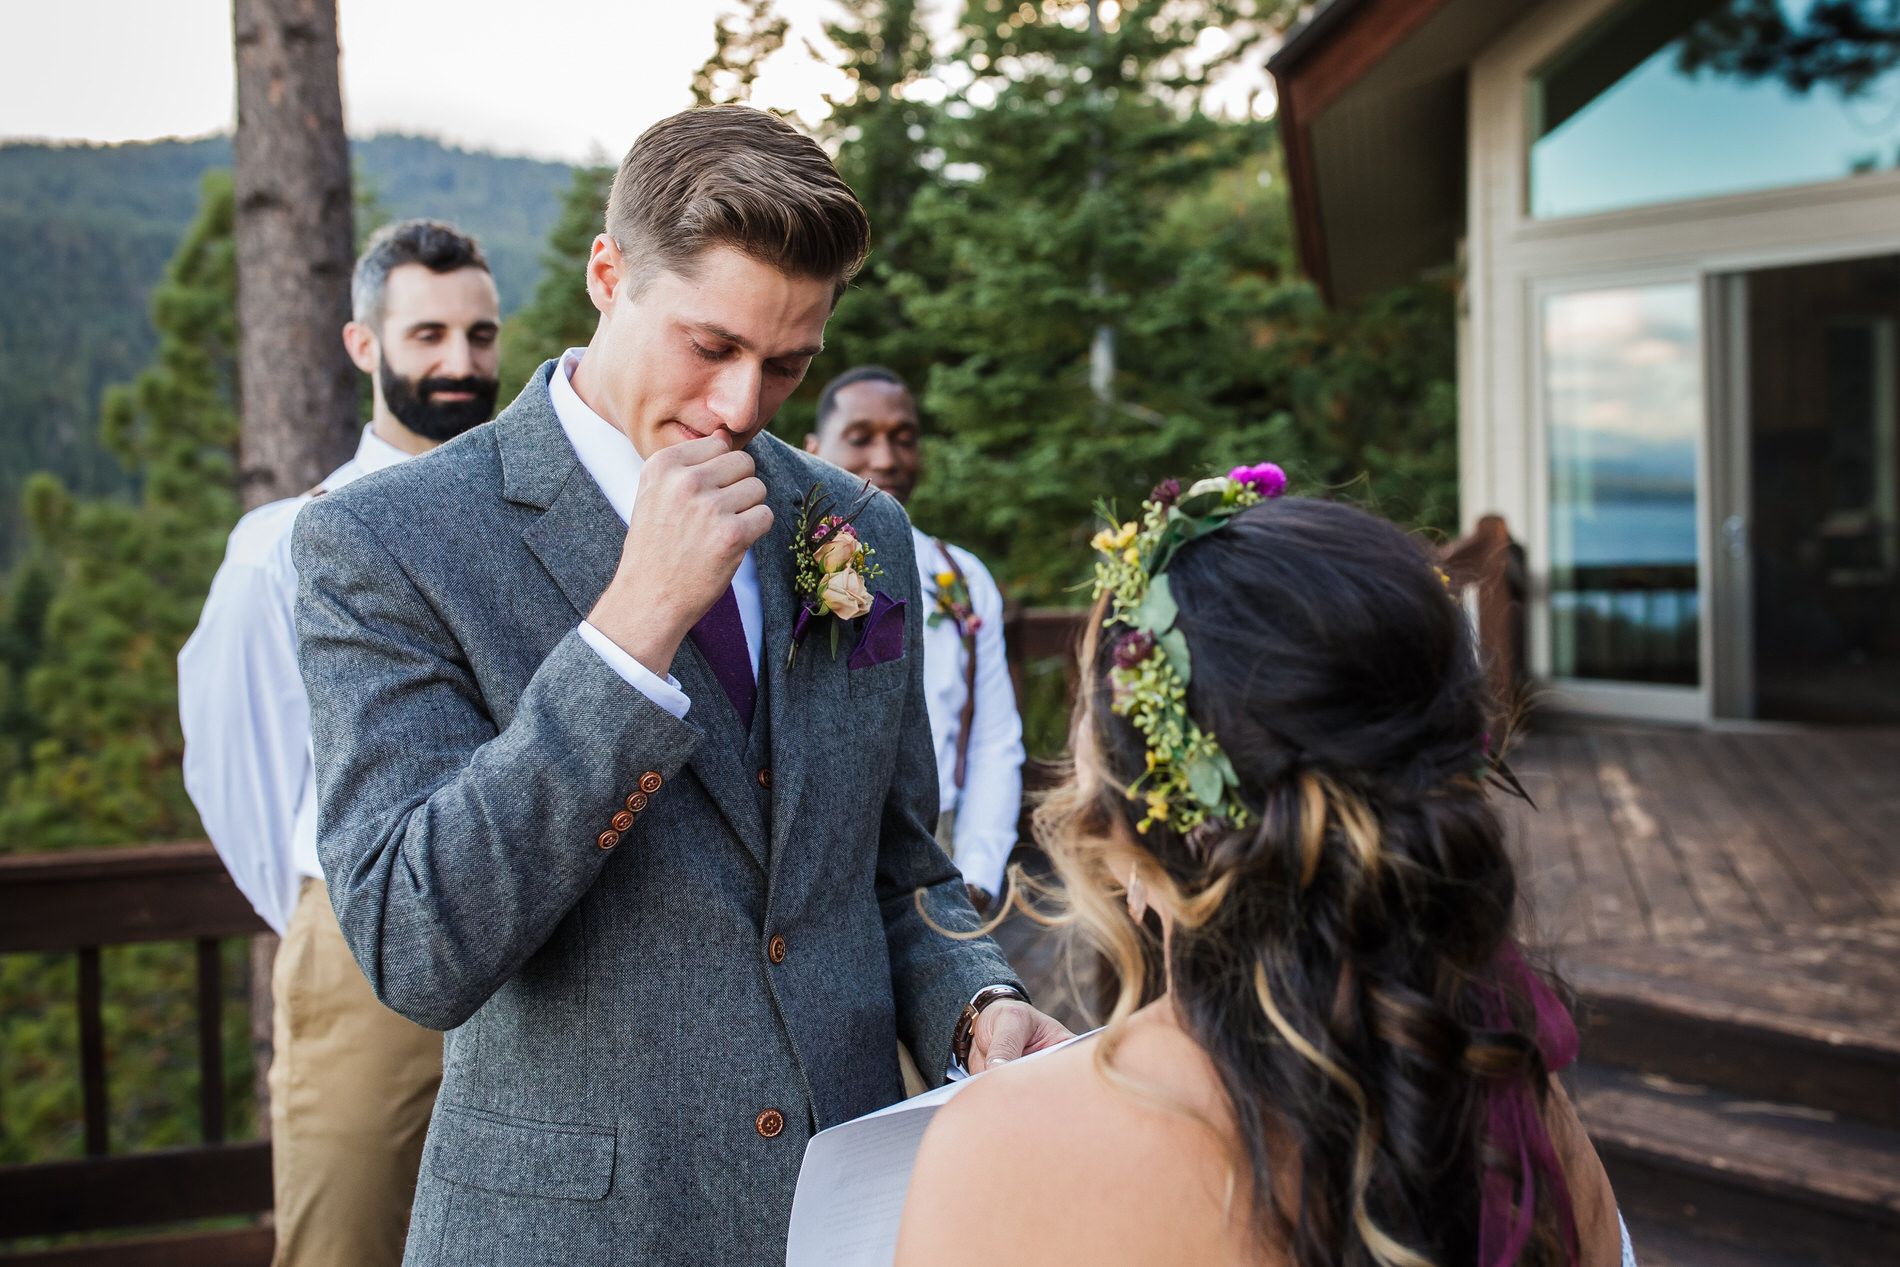 Tahoe City, California Elopement Ceremony Image | The wedding ceremony was emotional for the groom